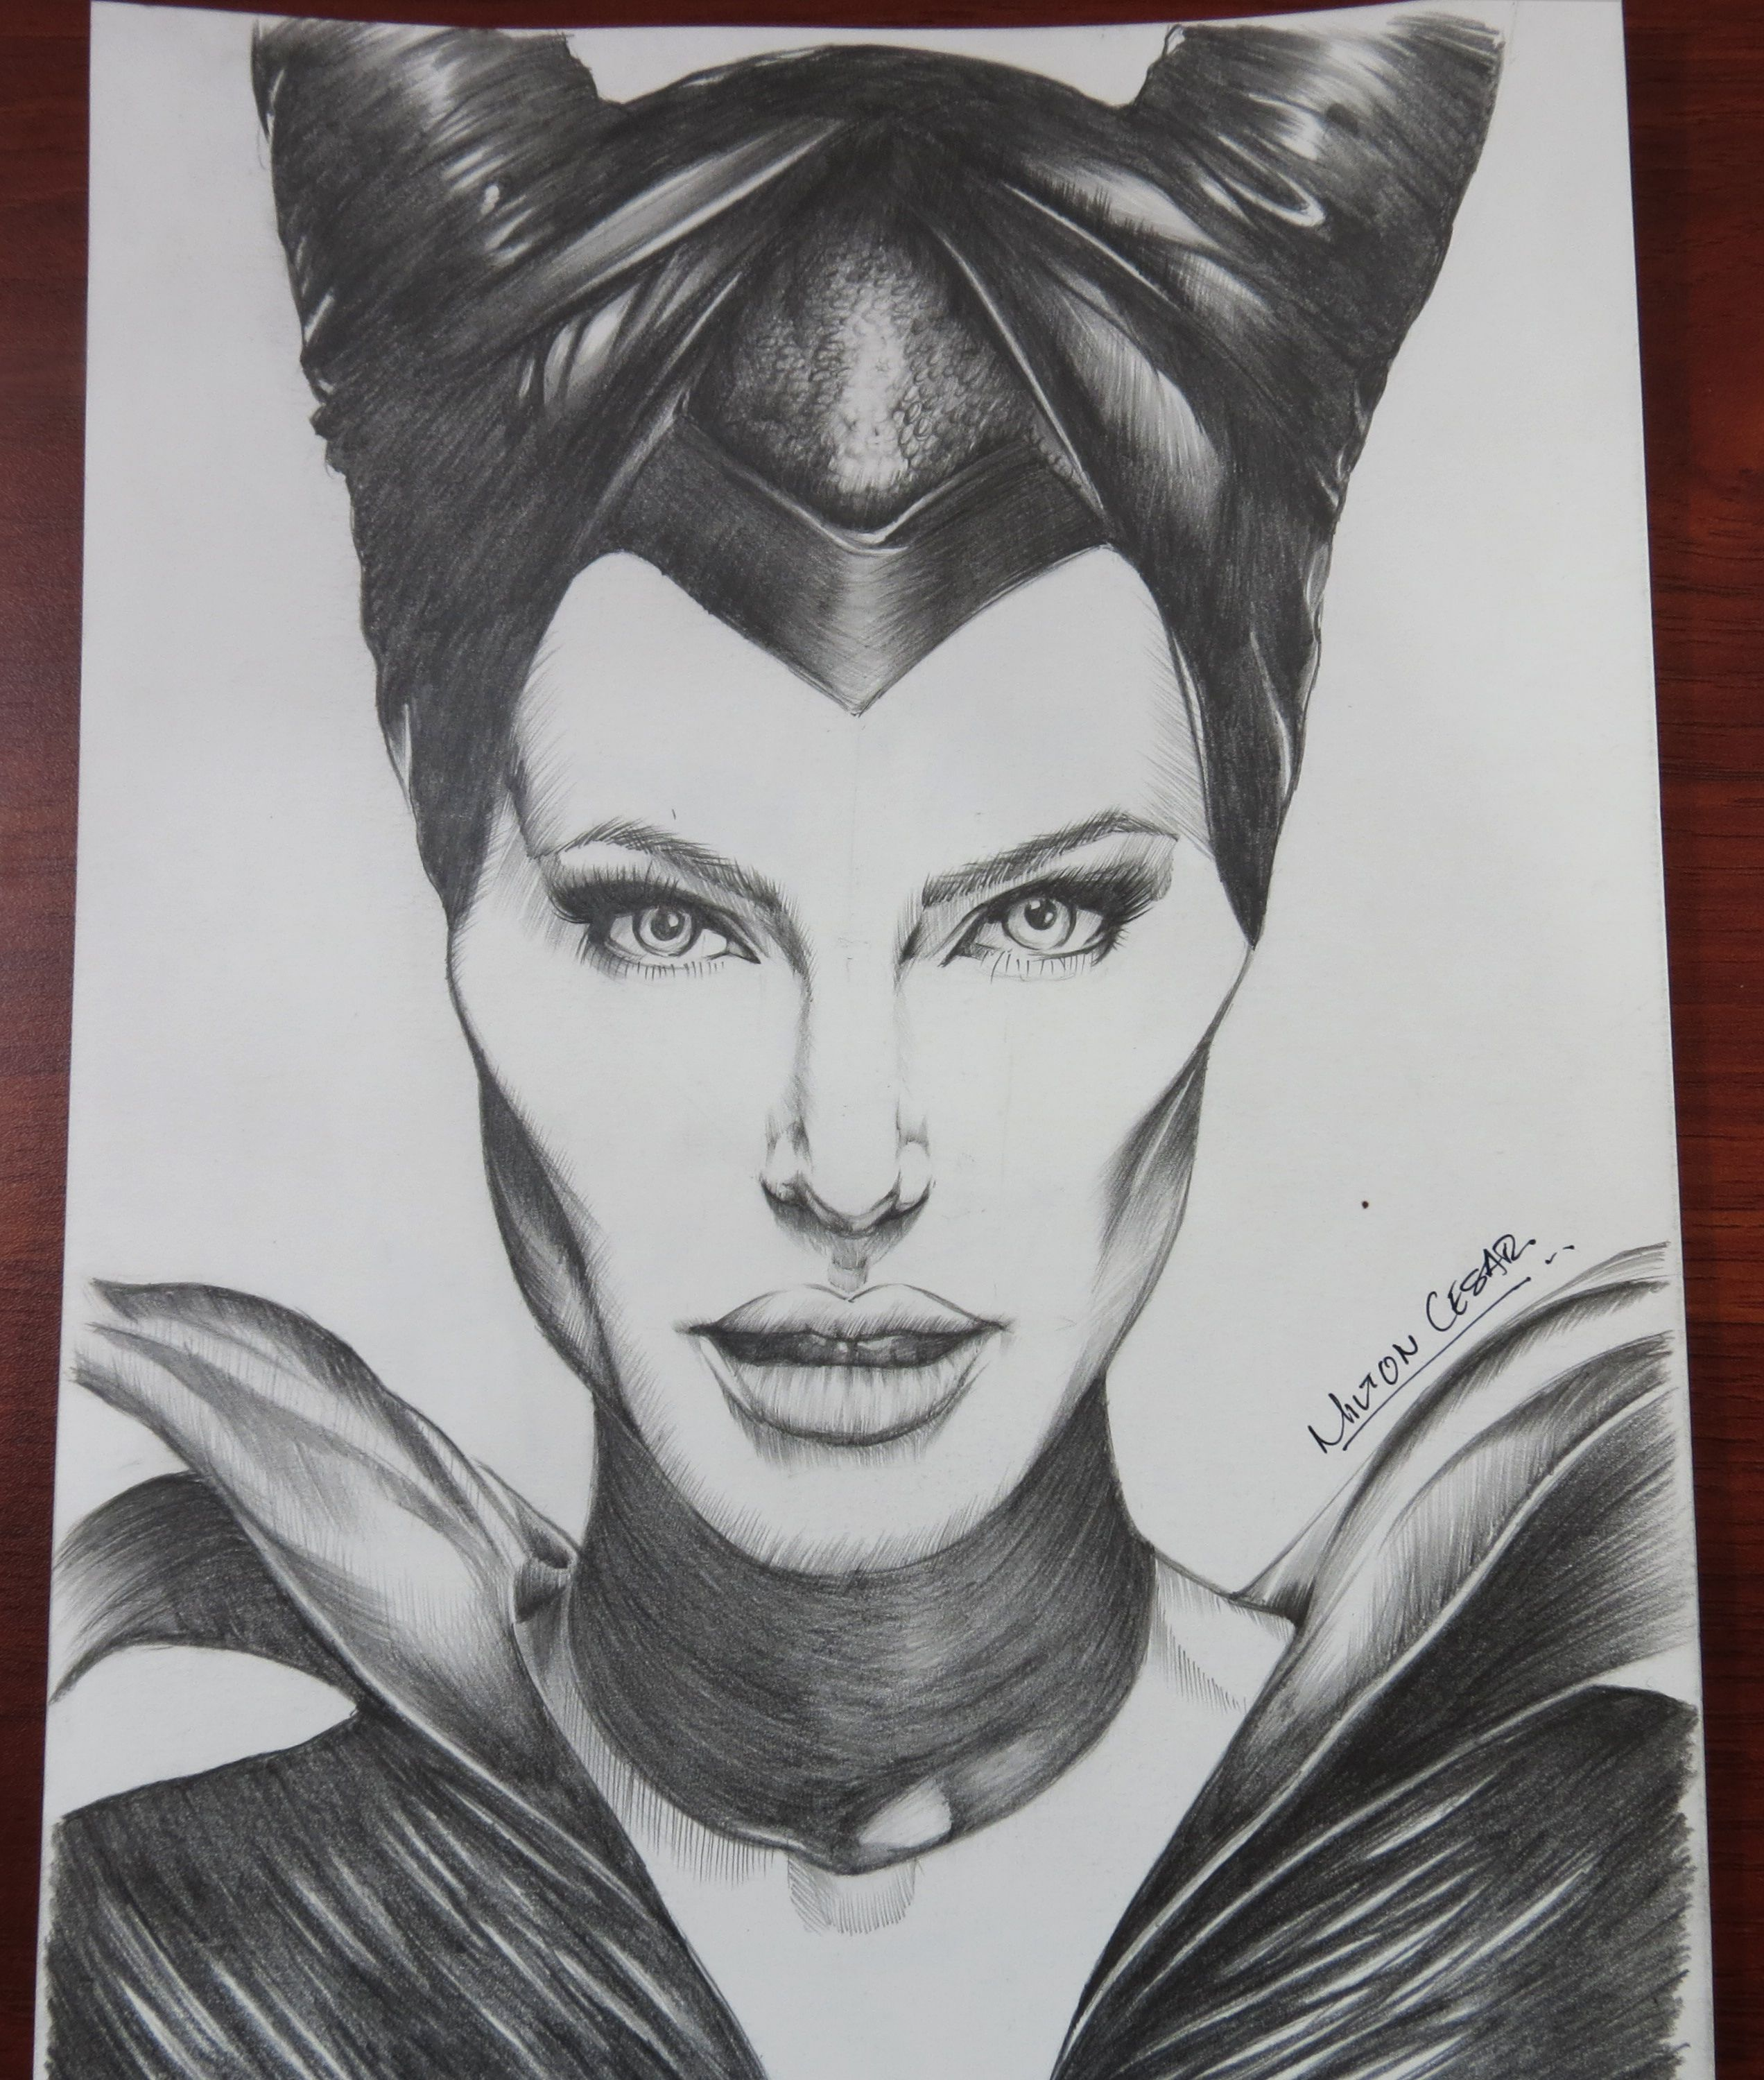 Angelina jolie maleficent draw maleficent drawing realistic cartoons malificent pencil drawings art